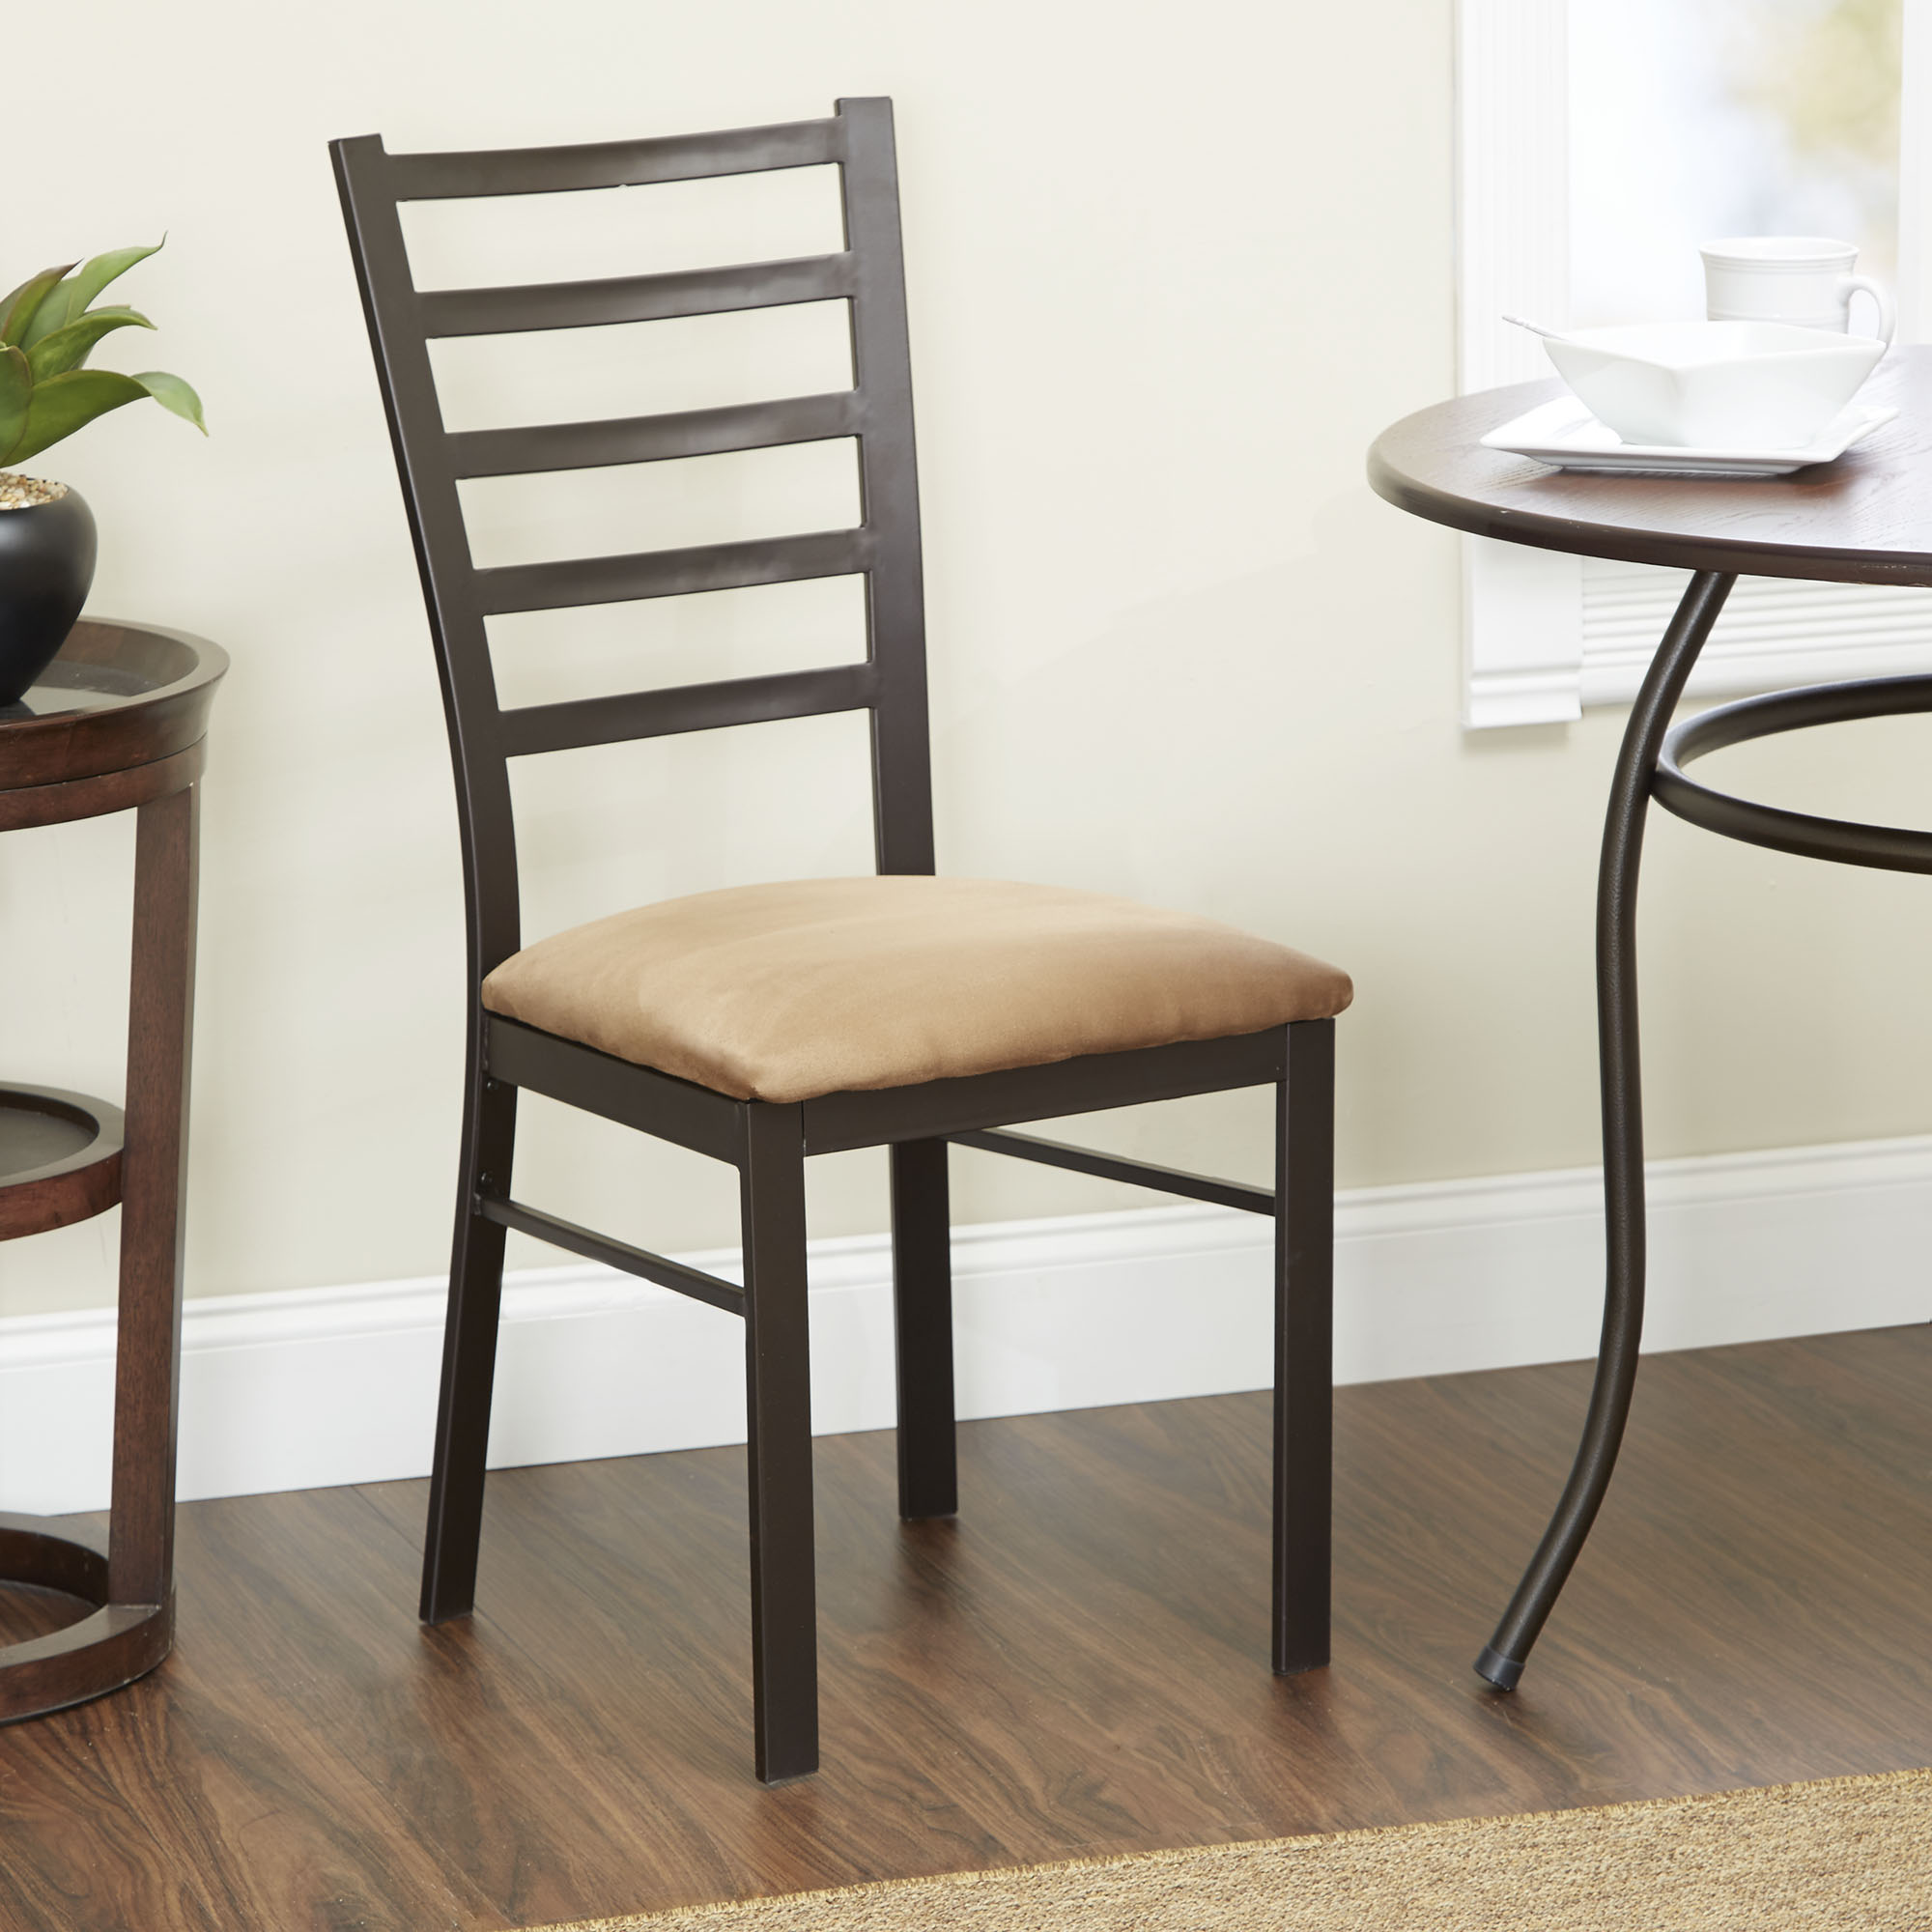 Mainstays Accent Chair, Oil-Rubbed Bronze Finish, Multiple Colors